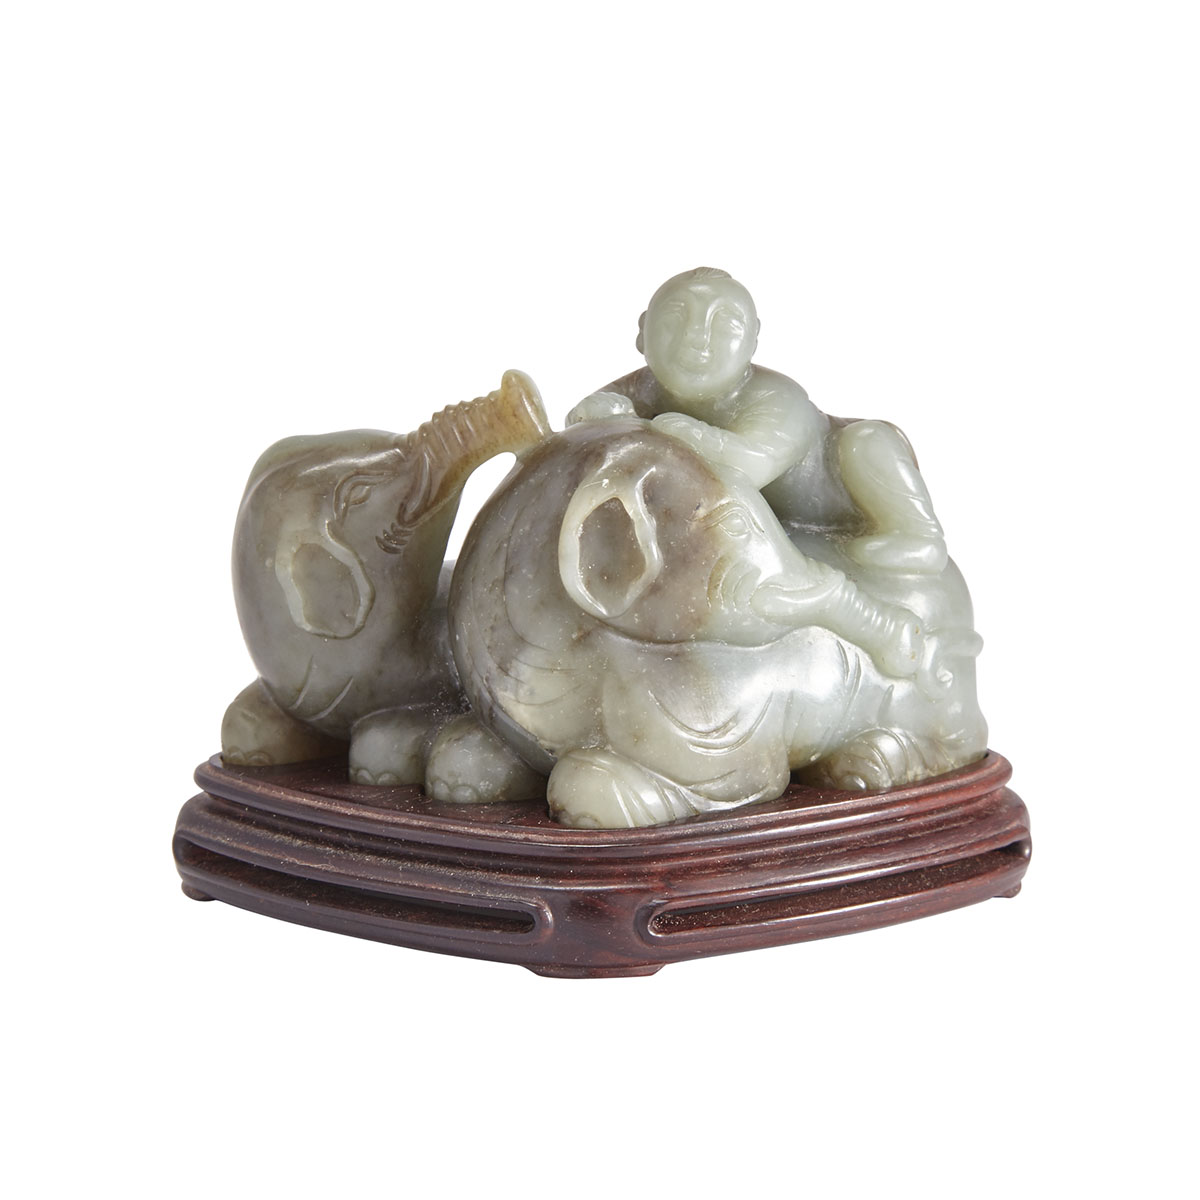 A Jade Carving of Boy and Elephants with a Zitan Stand, Qing Dynasty